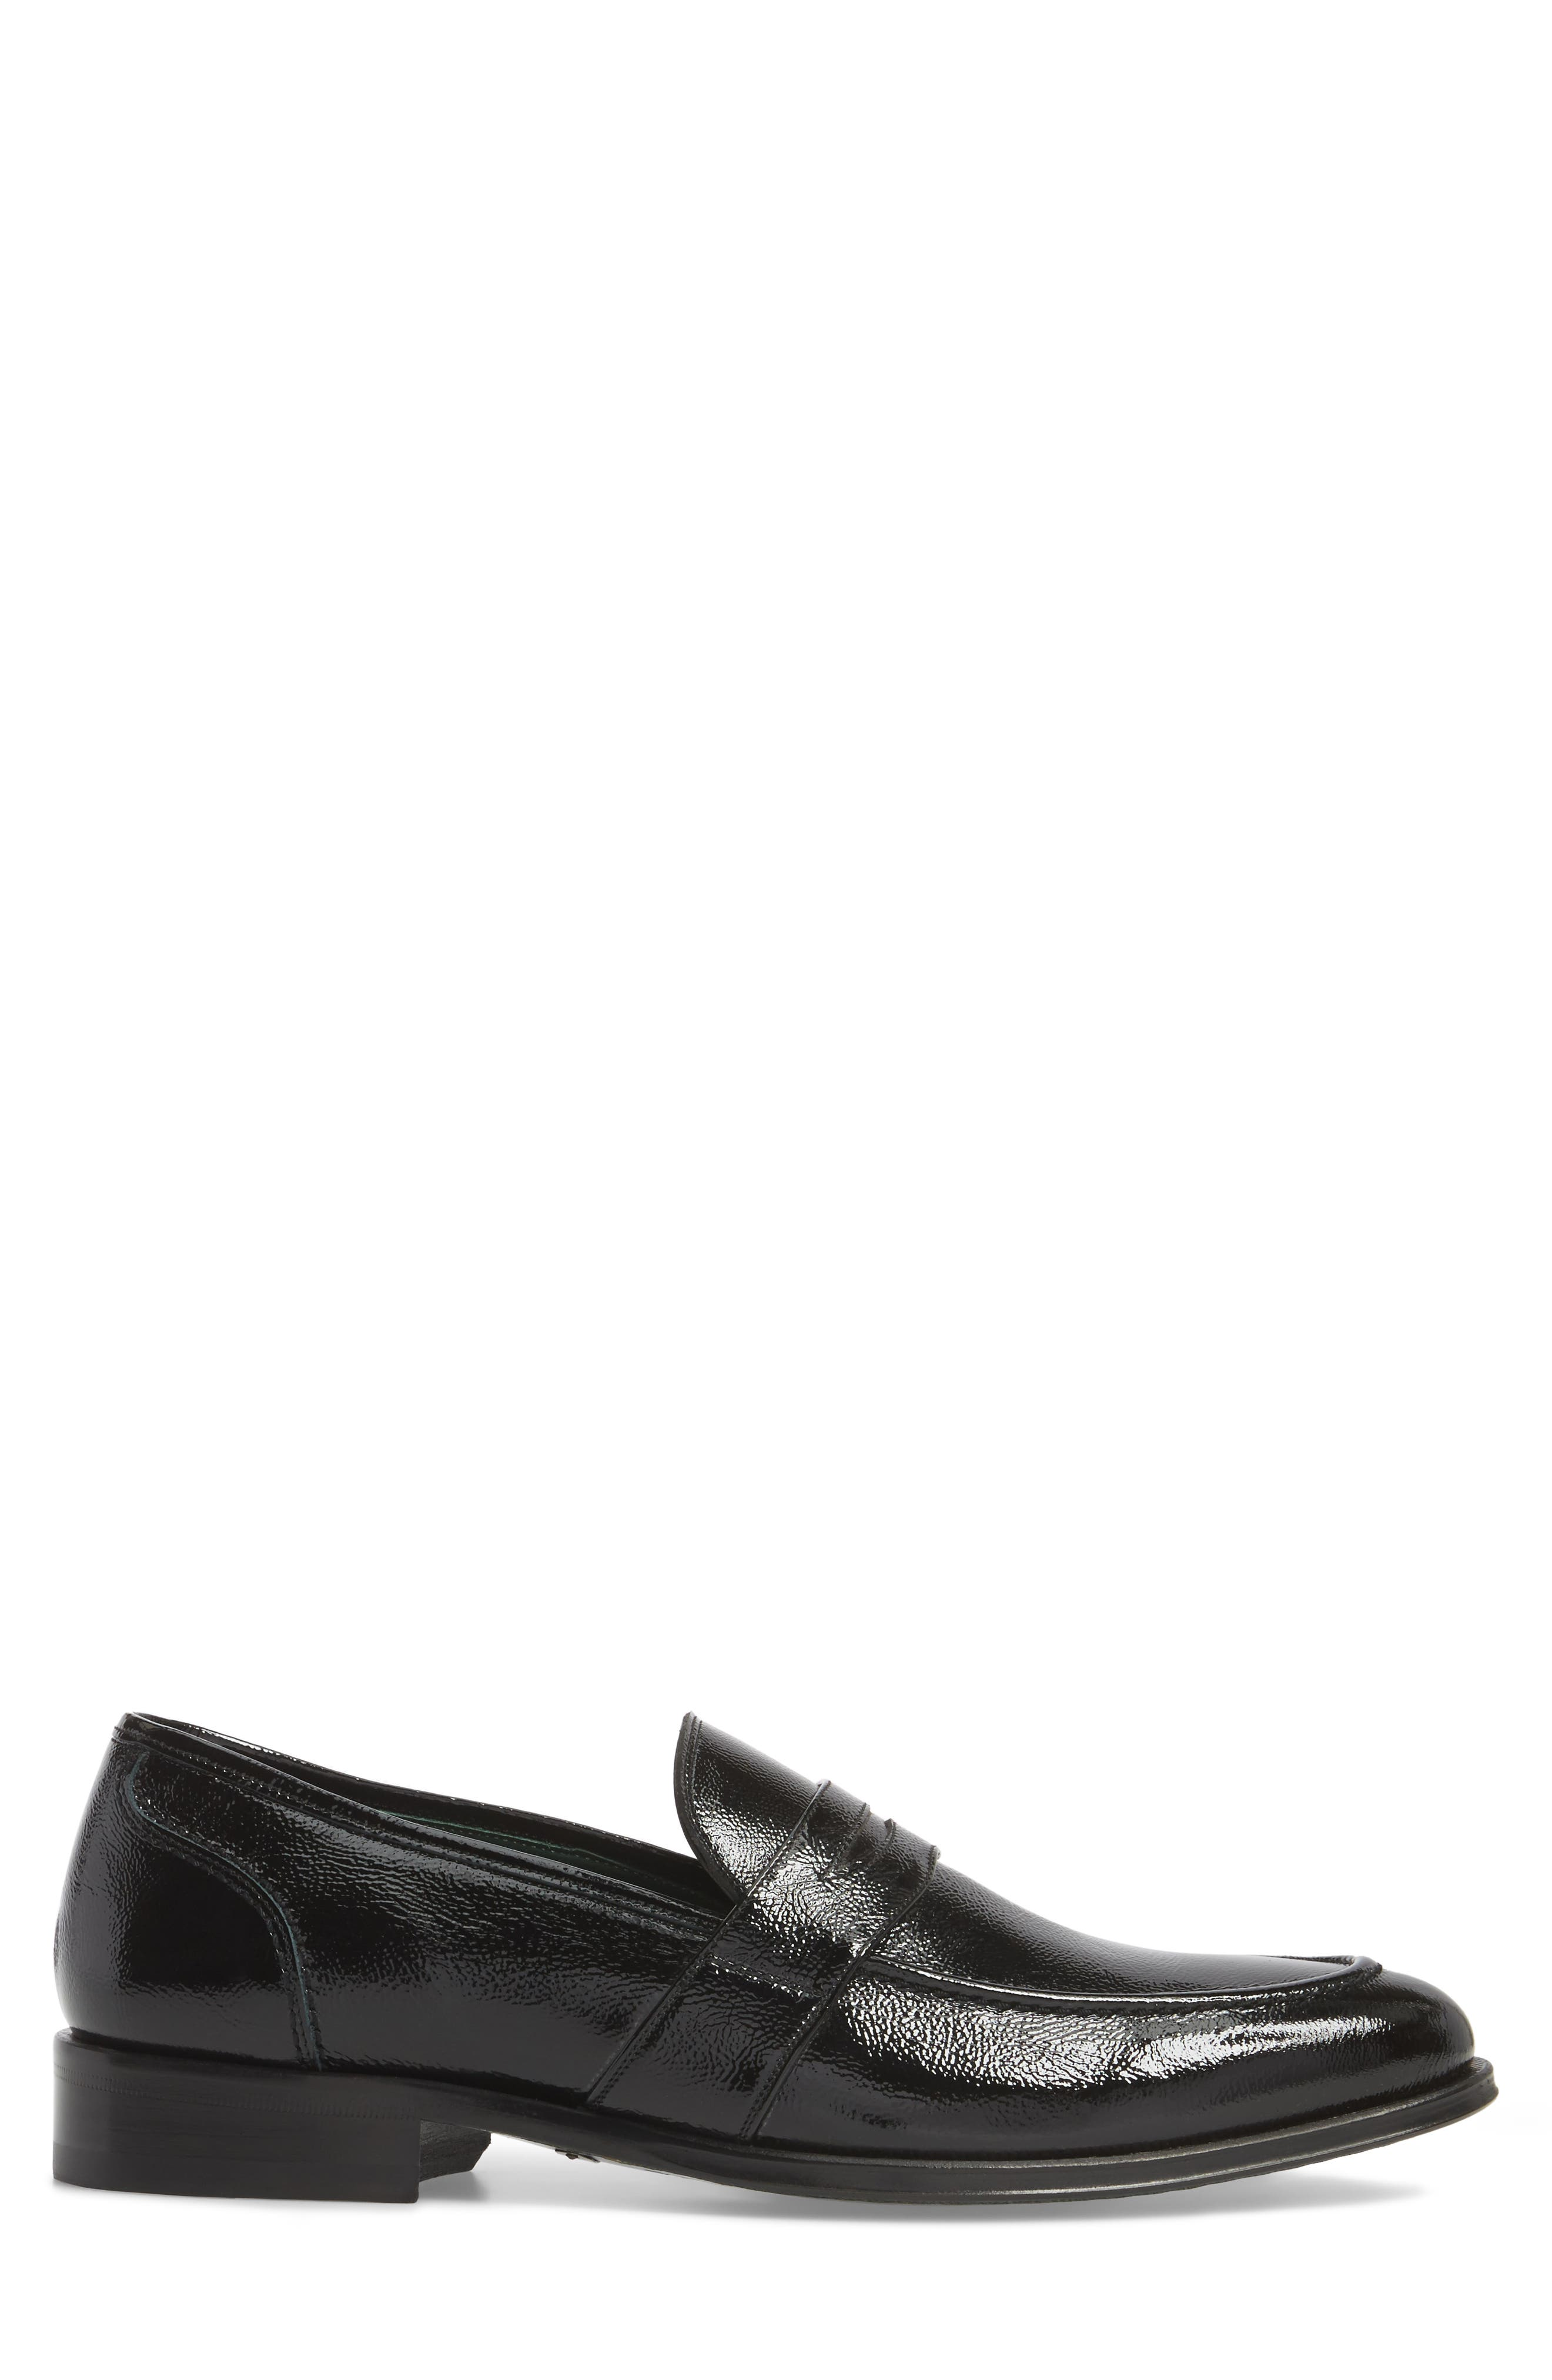 Argos Penny Loafer,                             Alternate thumbnail 3, color,                             Black Patent Leather